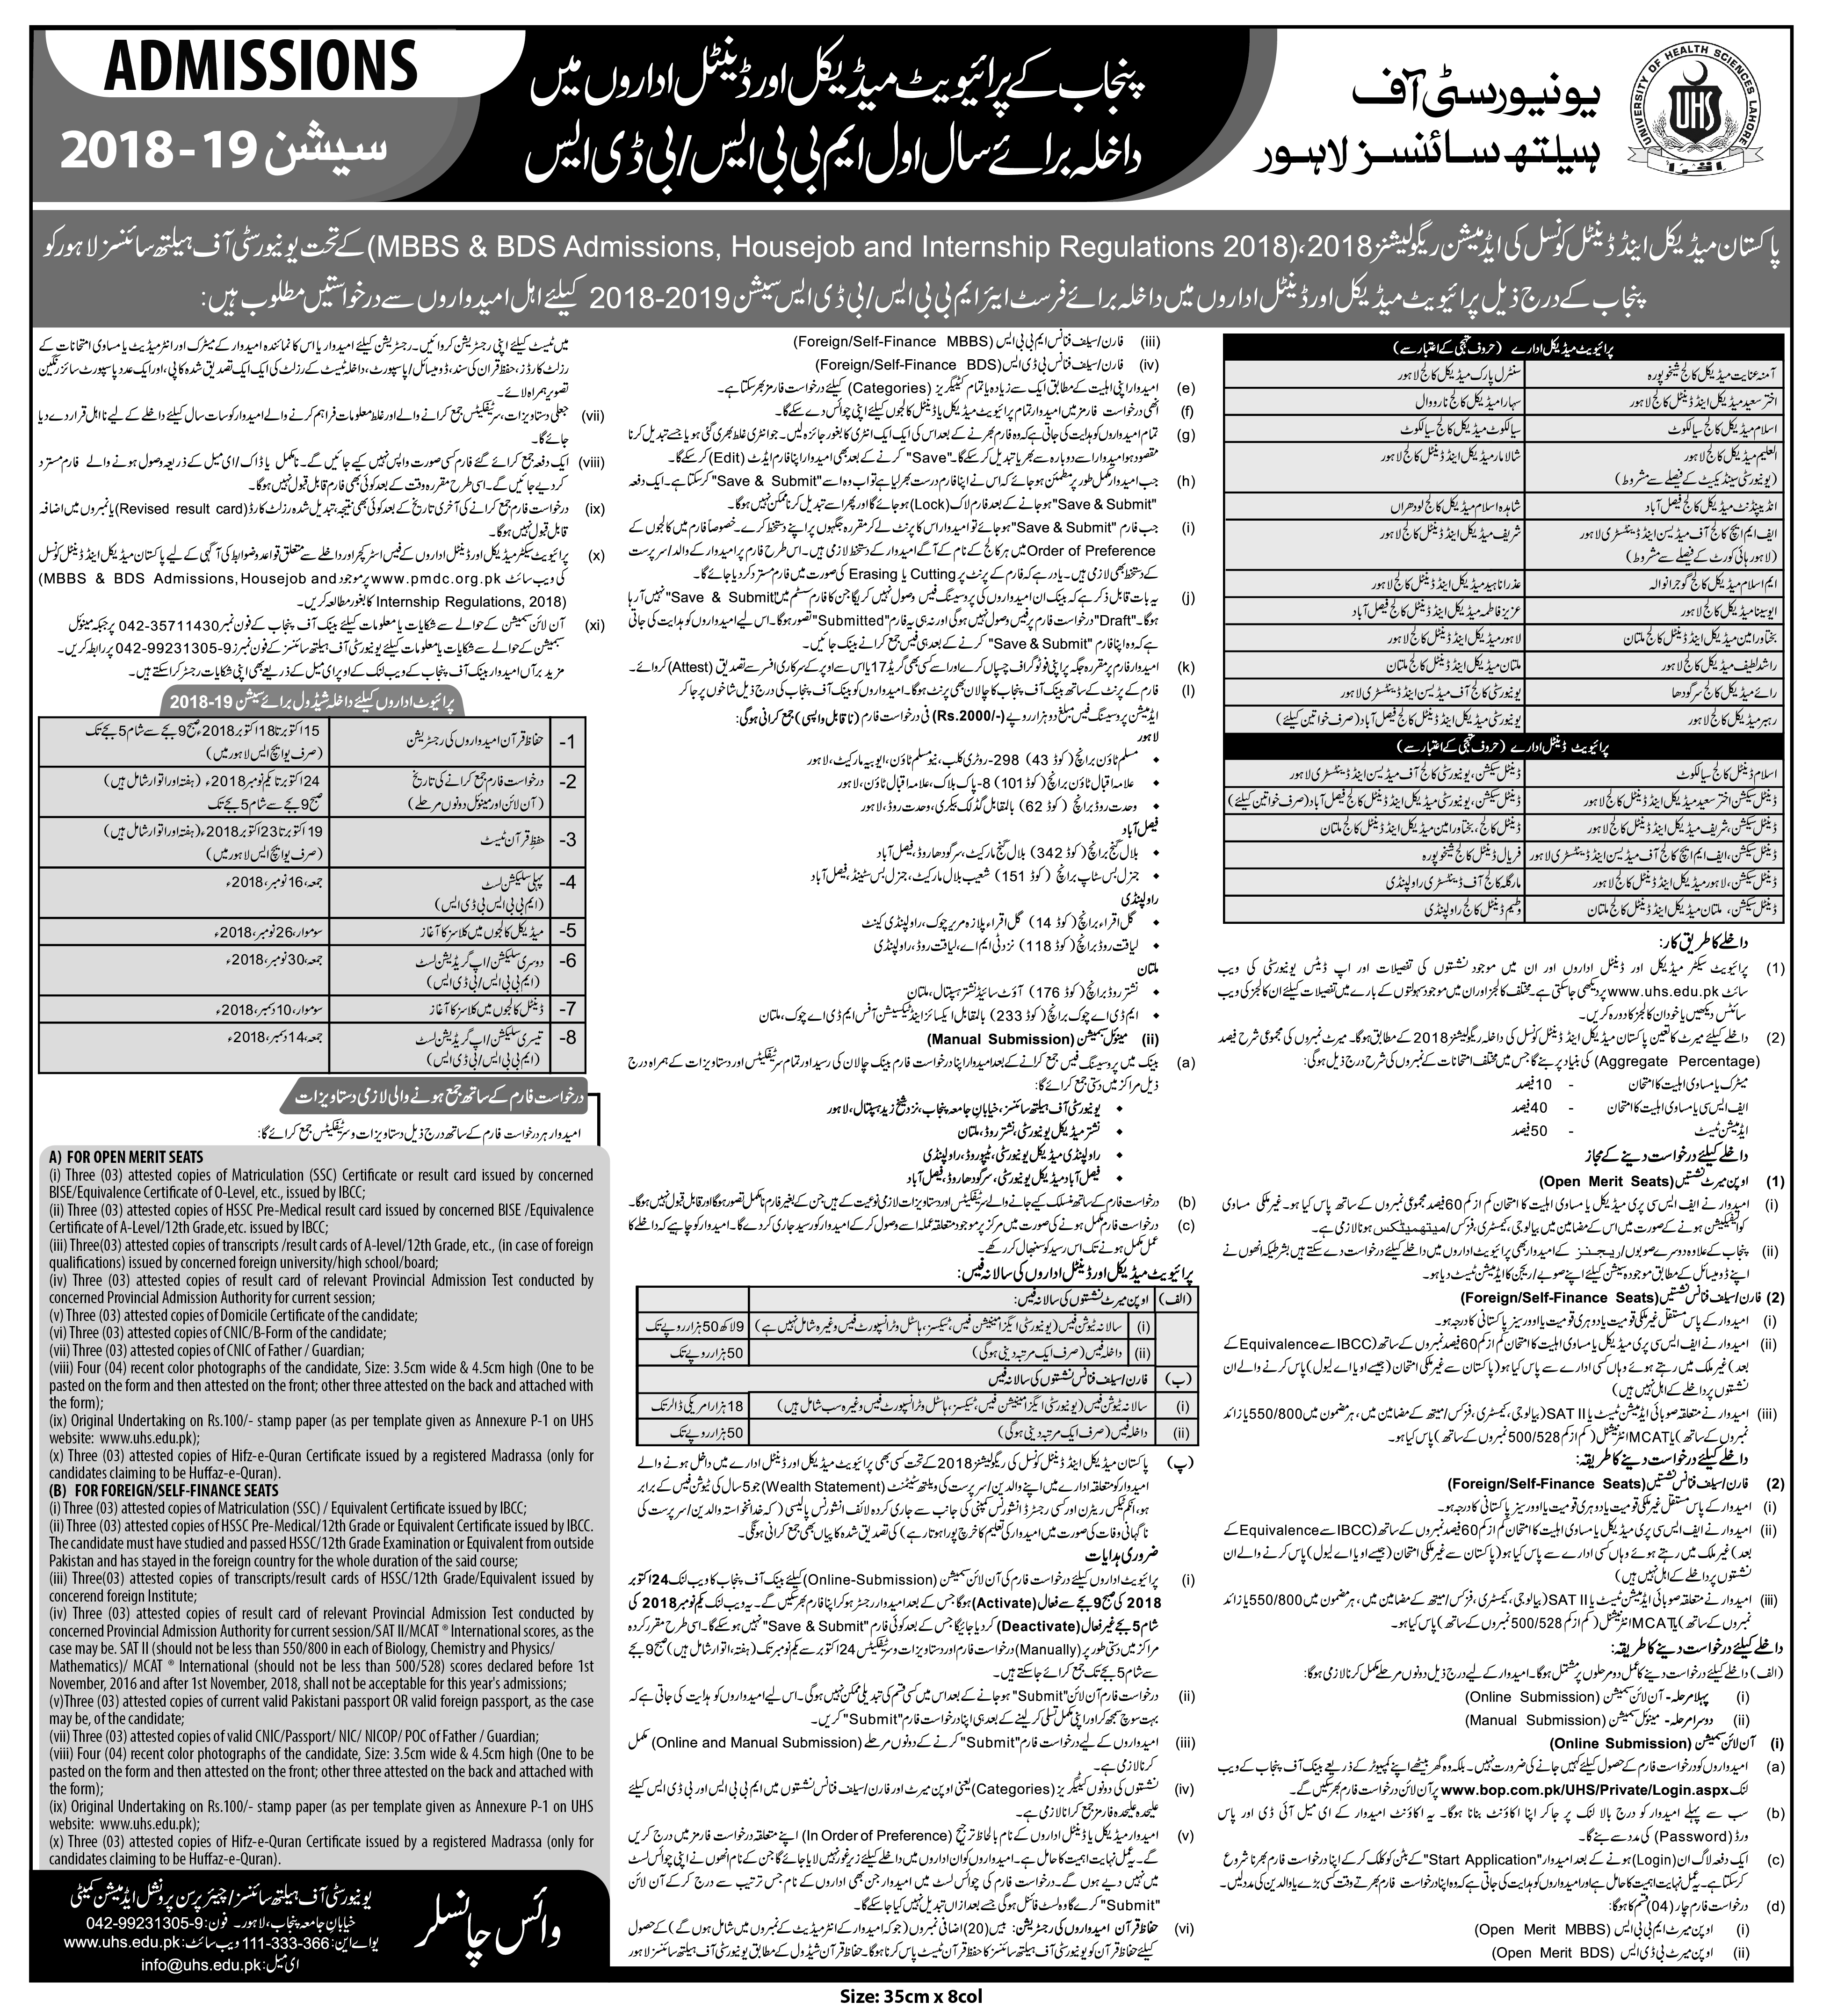 Punjab Private Medical Colleges Admission 2018